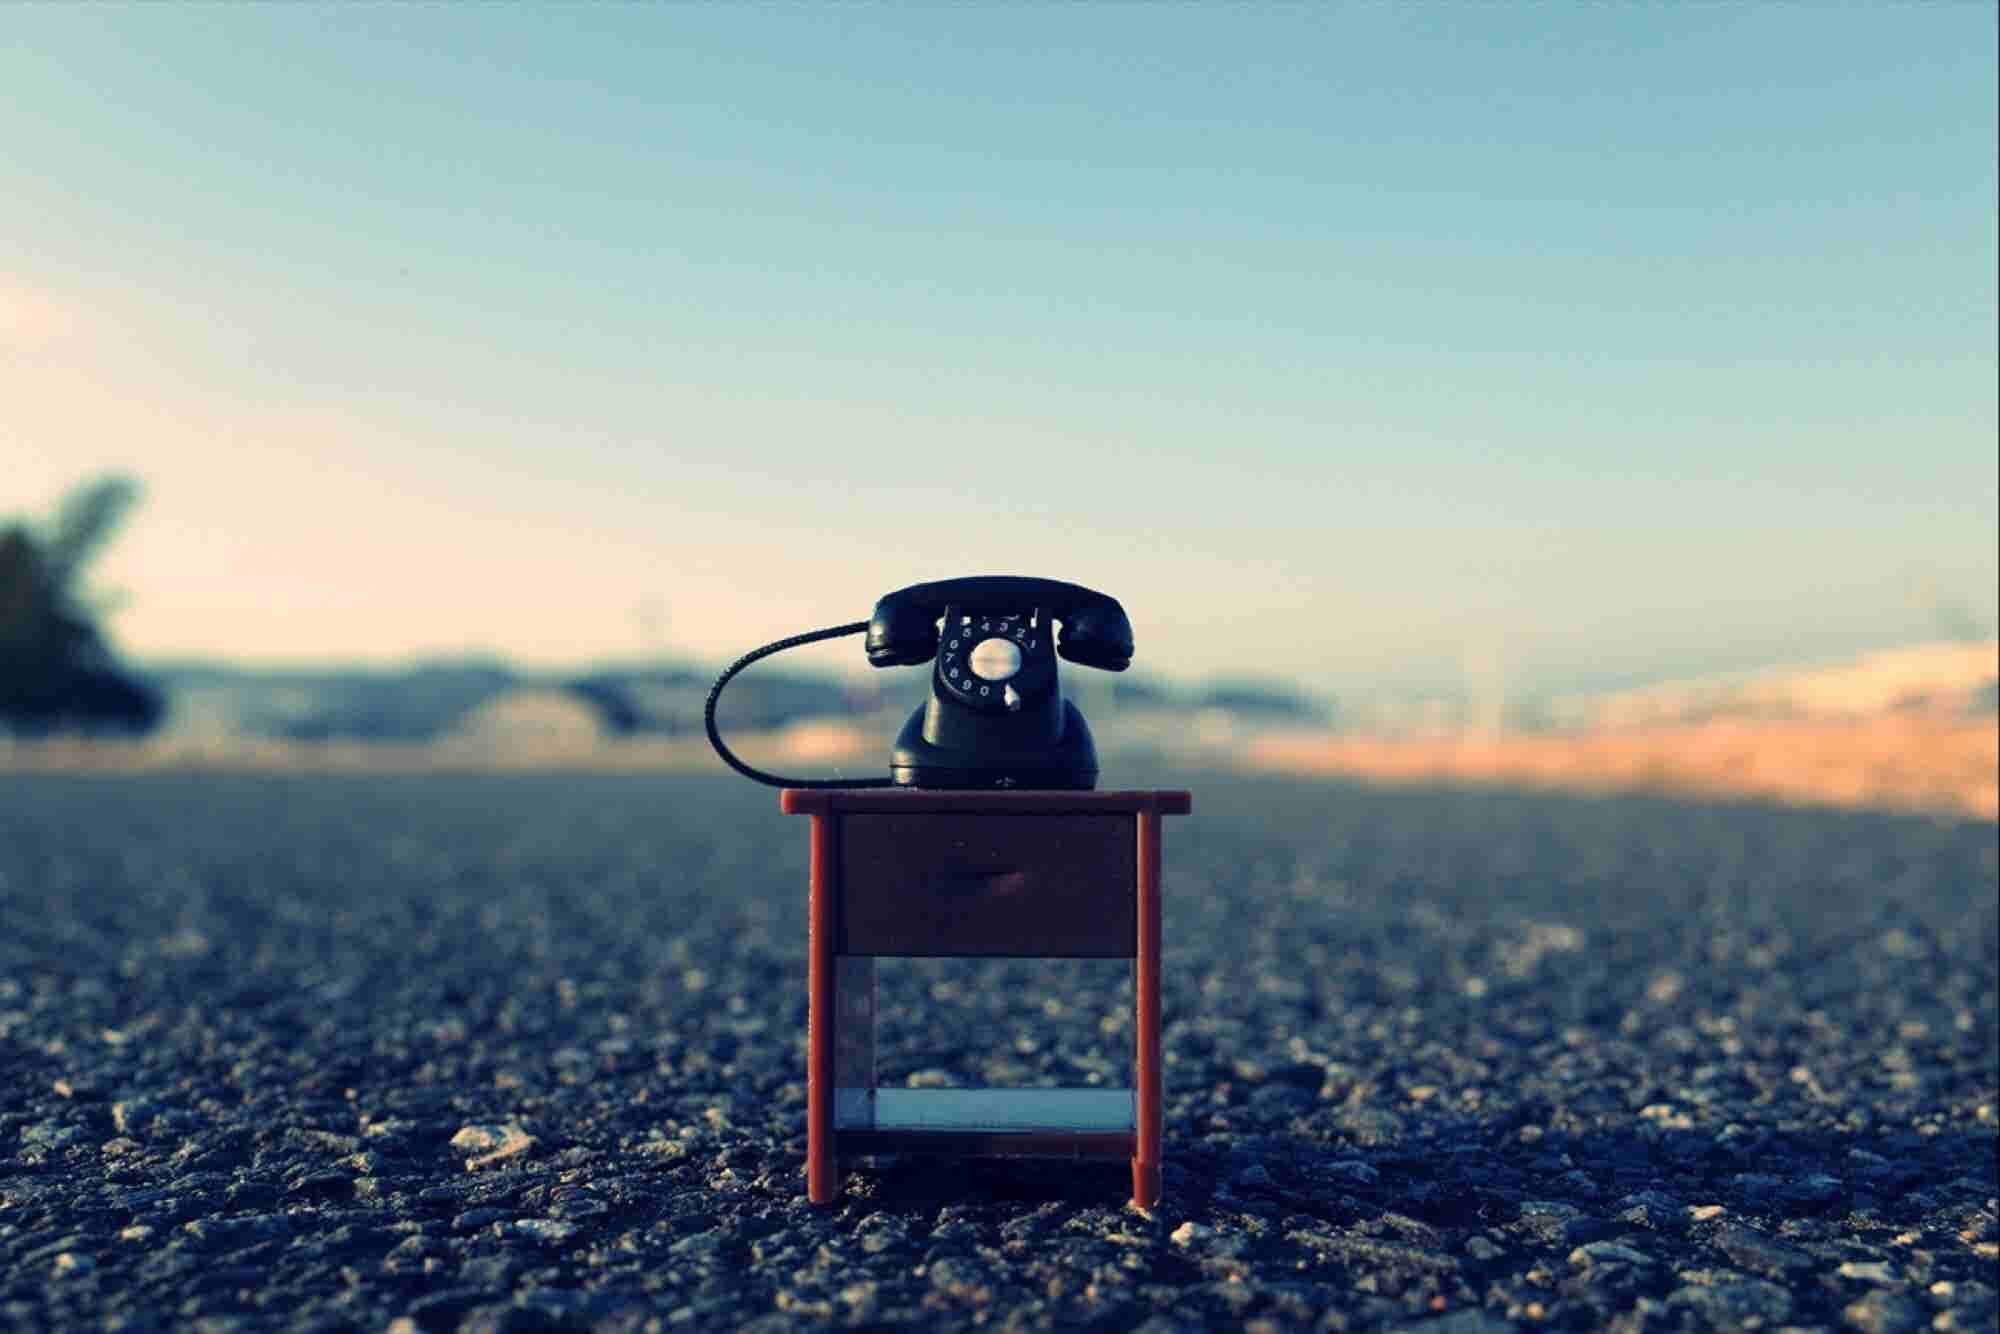 20 Lessons Learned From Making 2,000 B2B Cold Calls in Just 20 Days